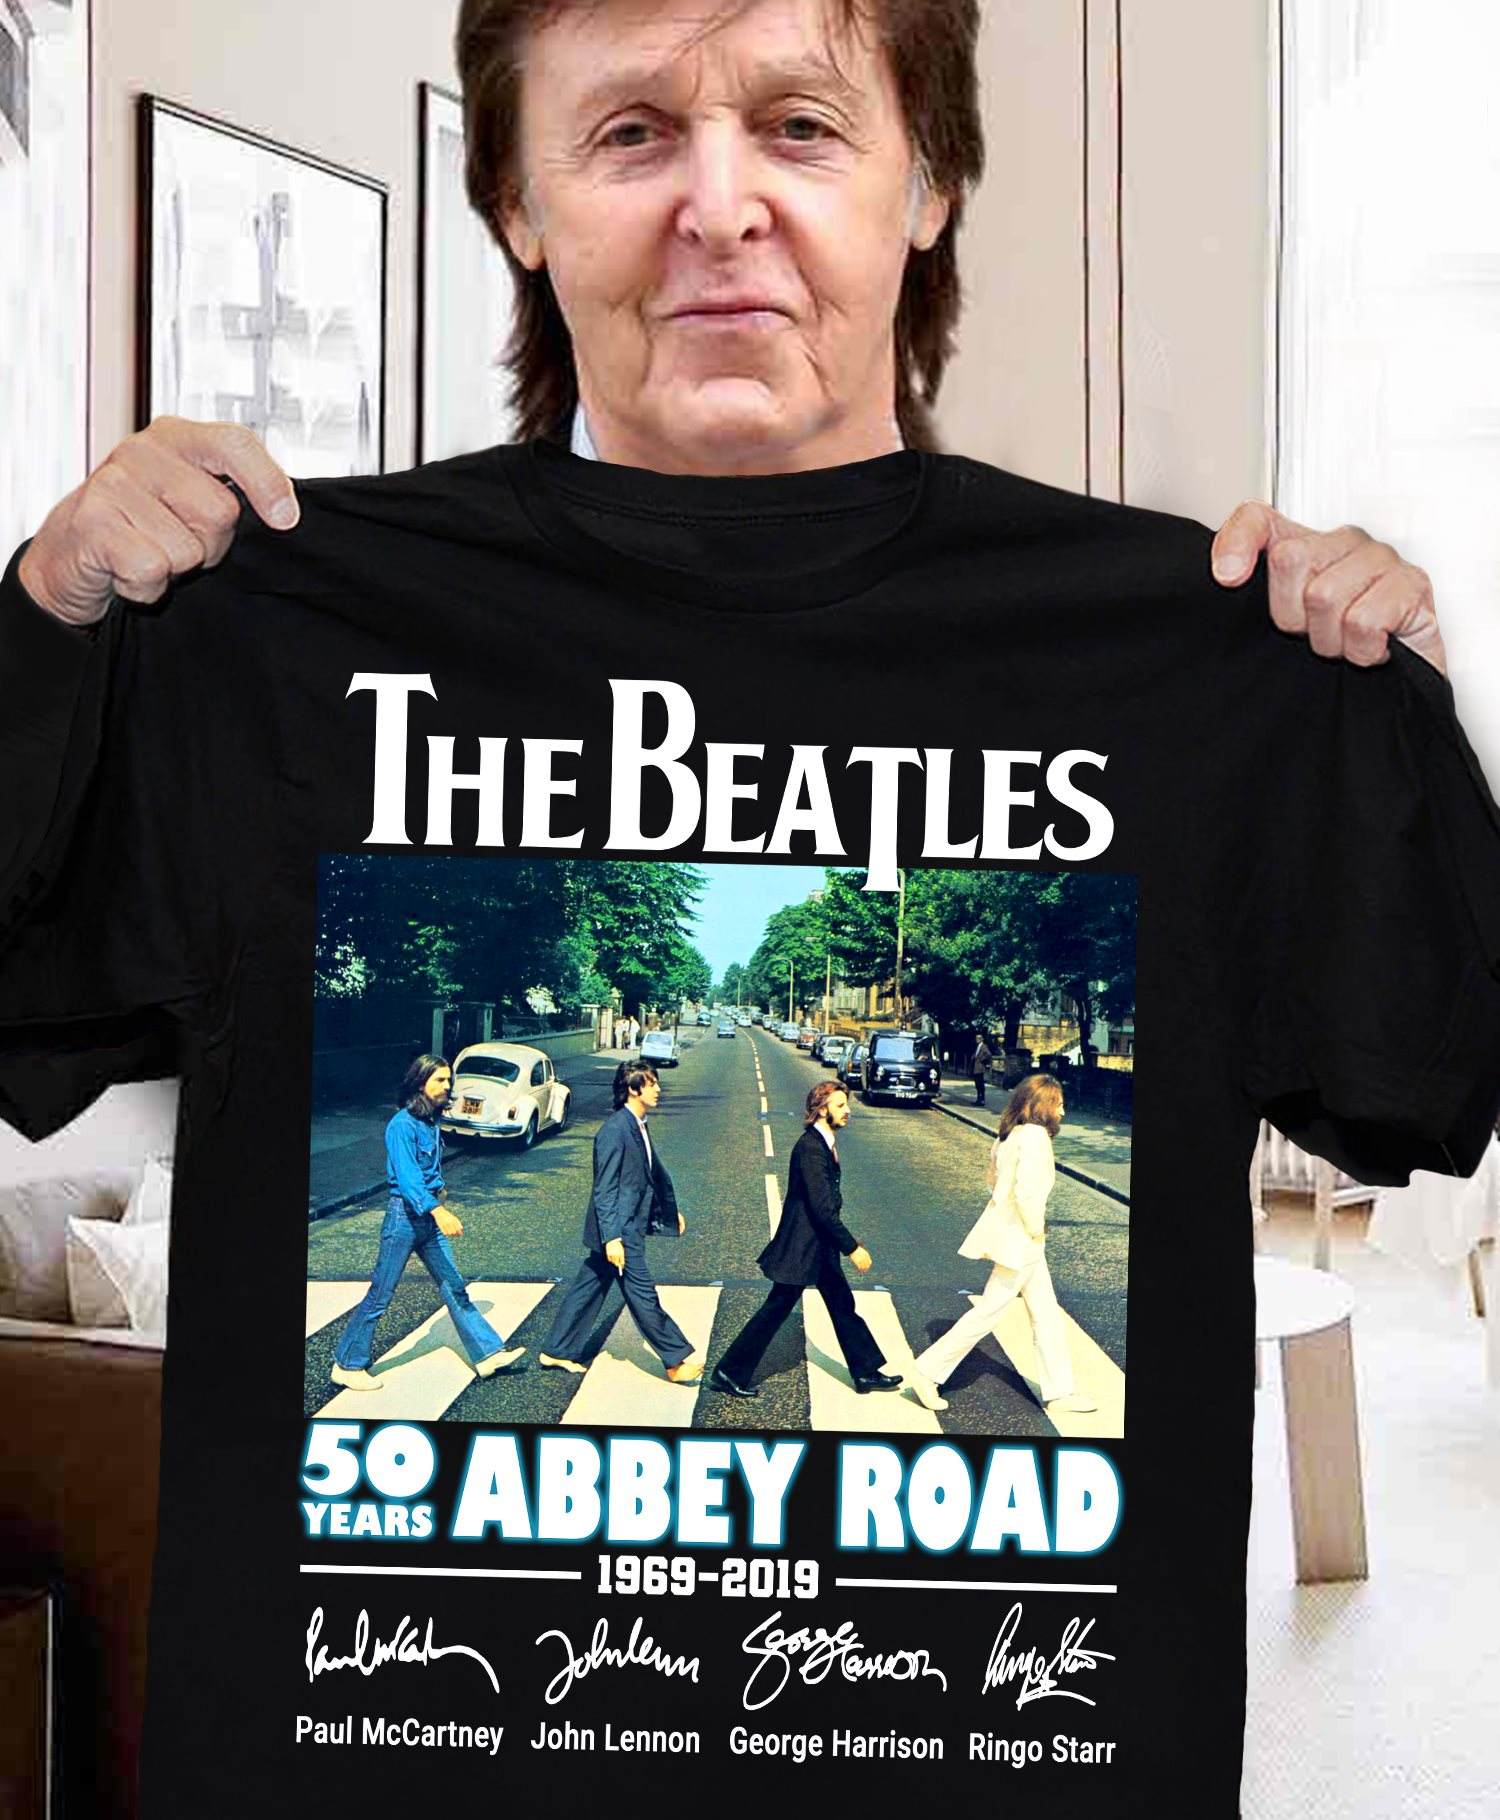 The Beathles 50 Years Abbey Road Sweatshirt